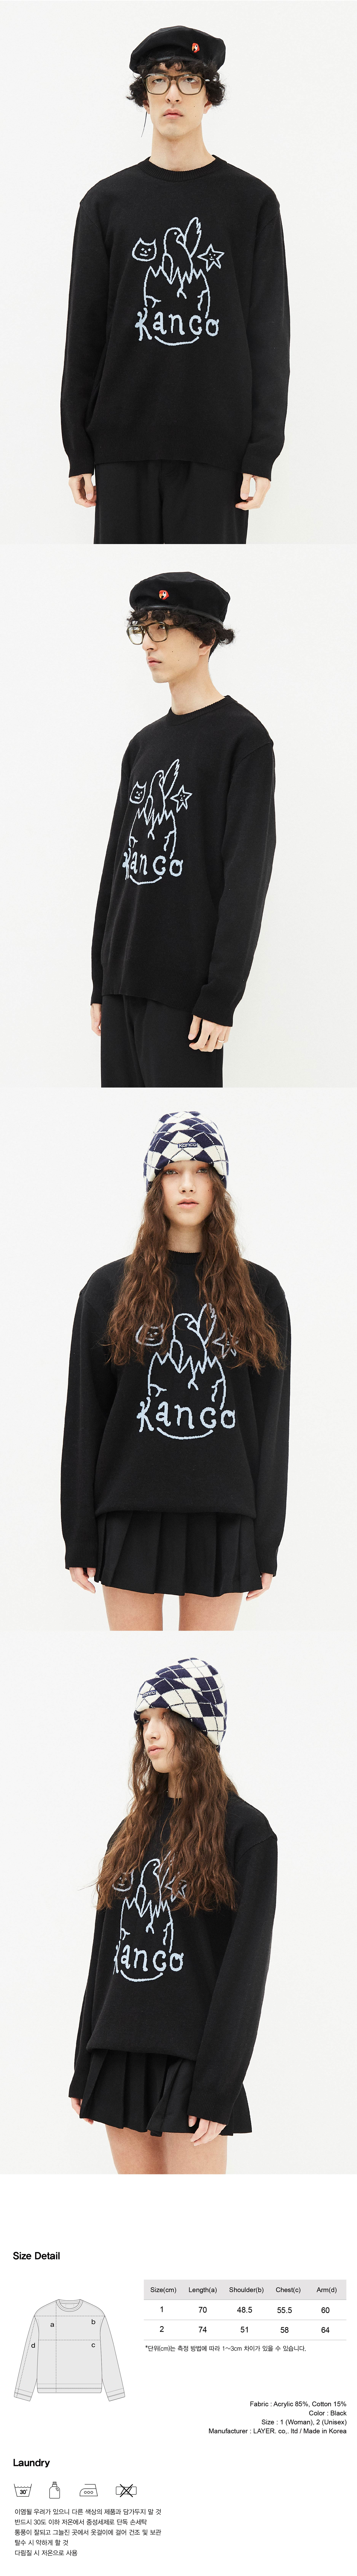 칸코(KANCO) KANCO BIRTHDAY KNIT PULLOVER black